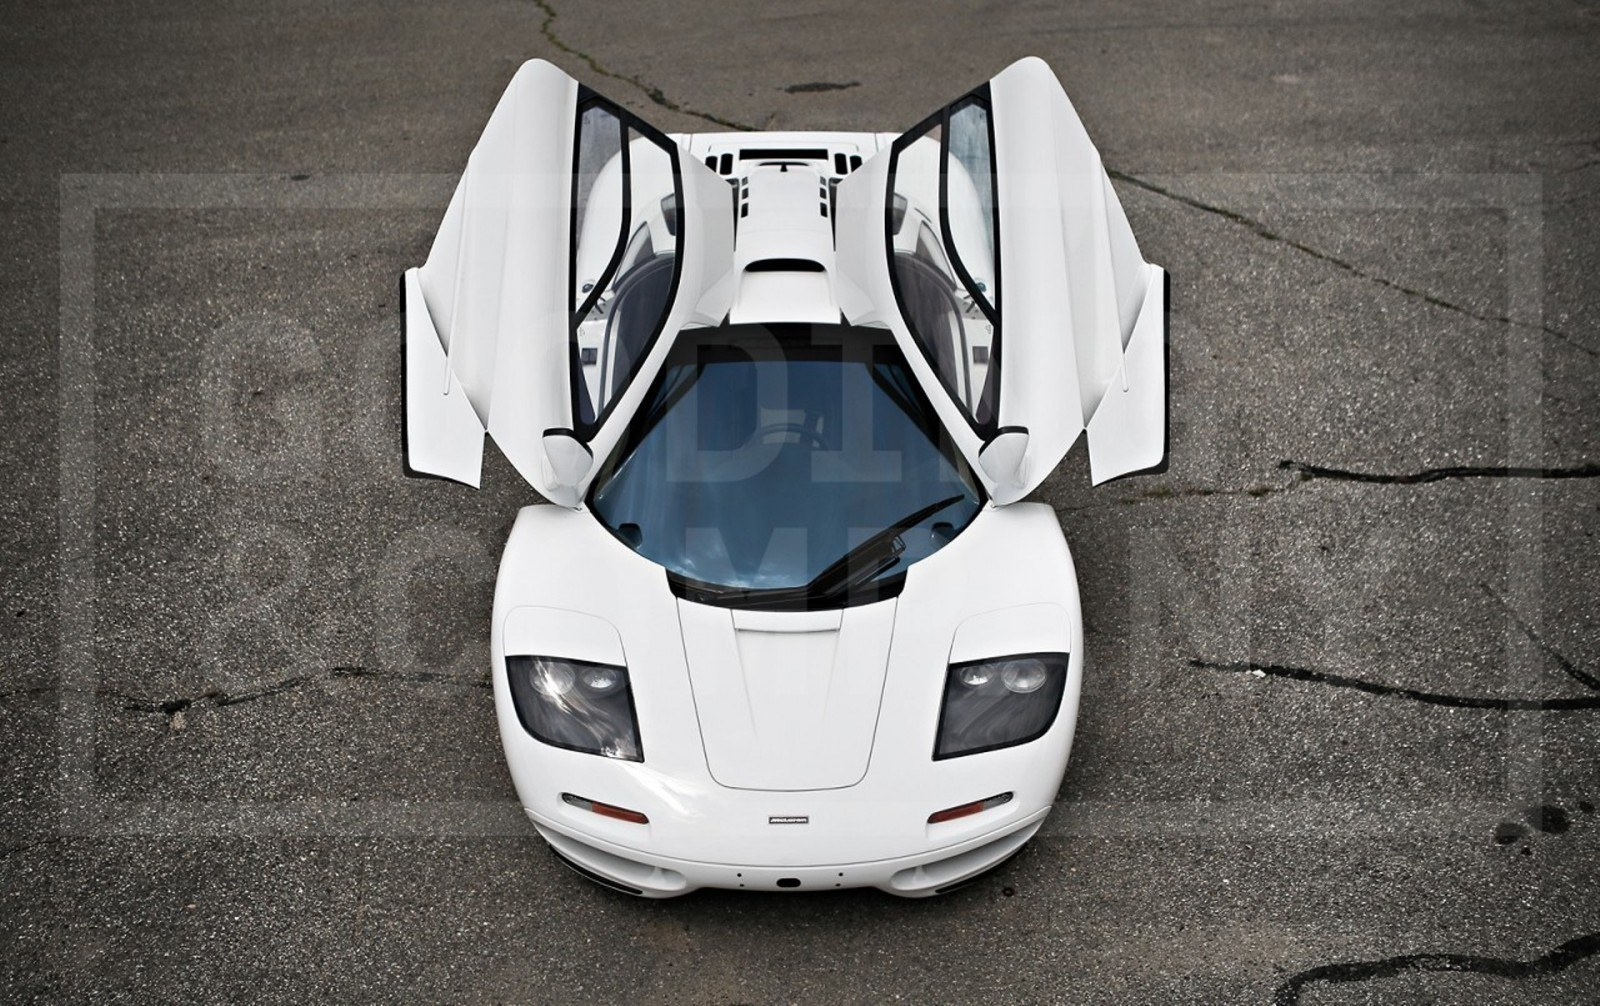 Gooding Pebble Beach 2014 Preview - 1995 McLaren F1 - The Only White F1 Ever Made = $12Mil+ 5